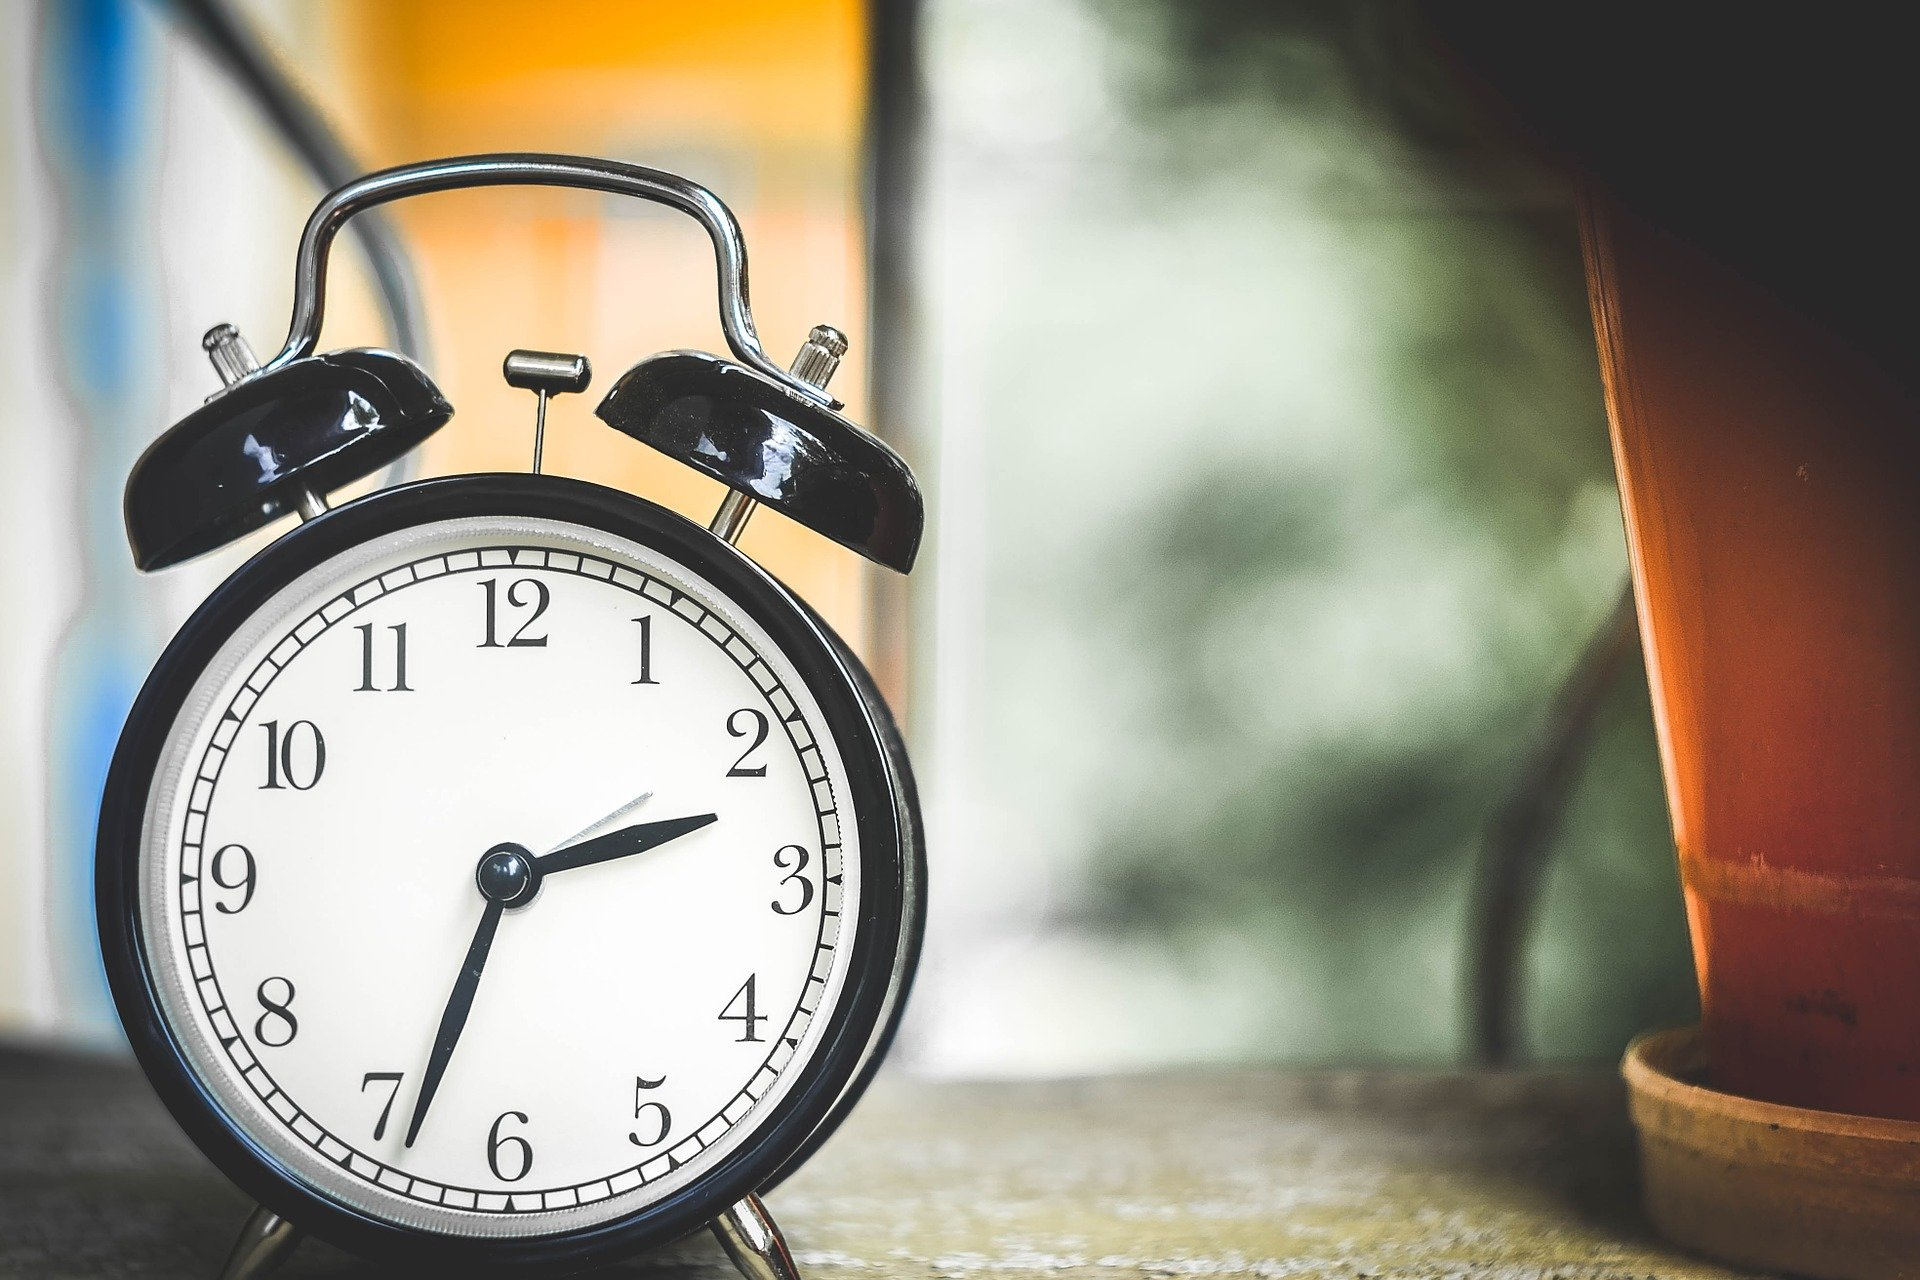 Expert discusses the impact of daylight saving time on the body